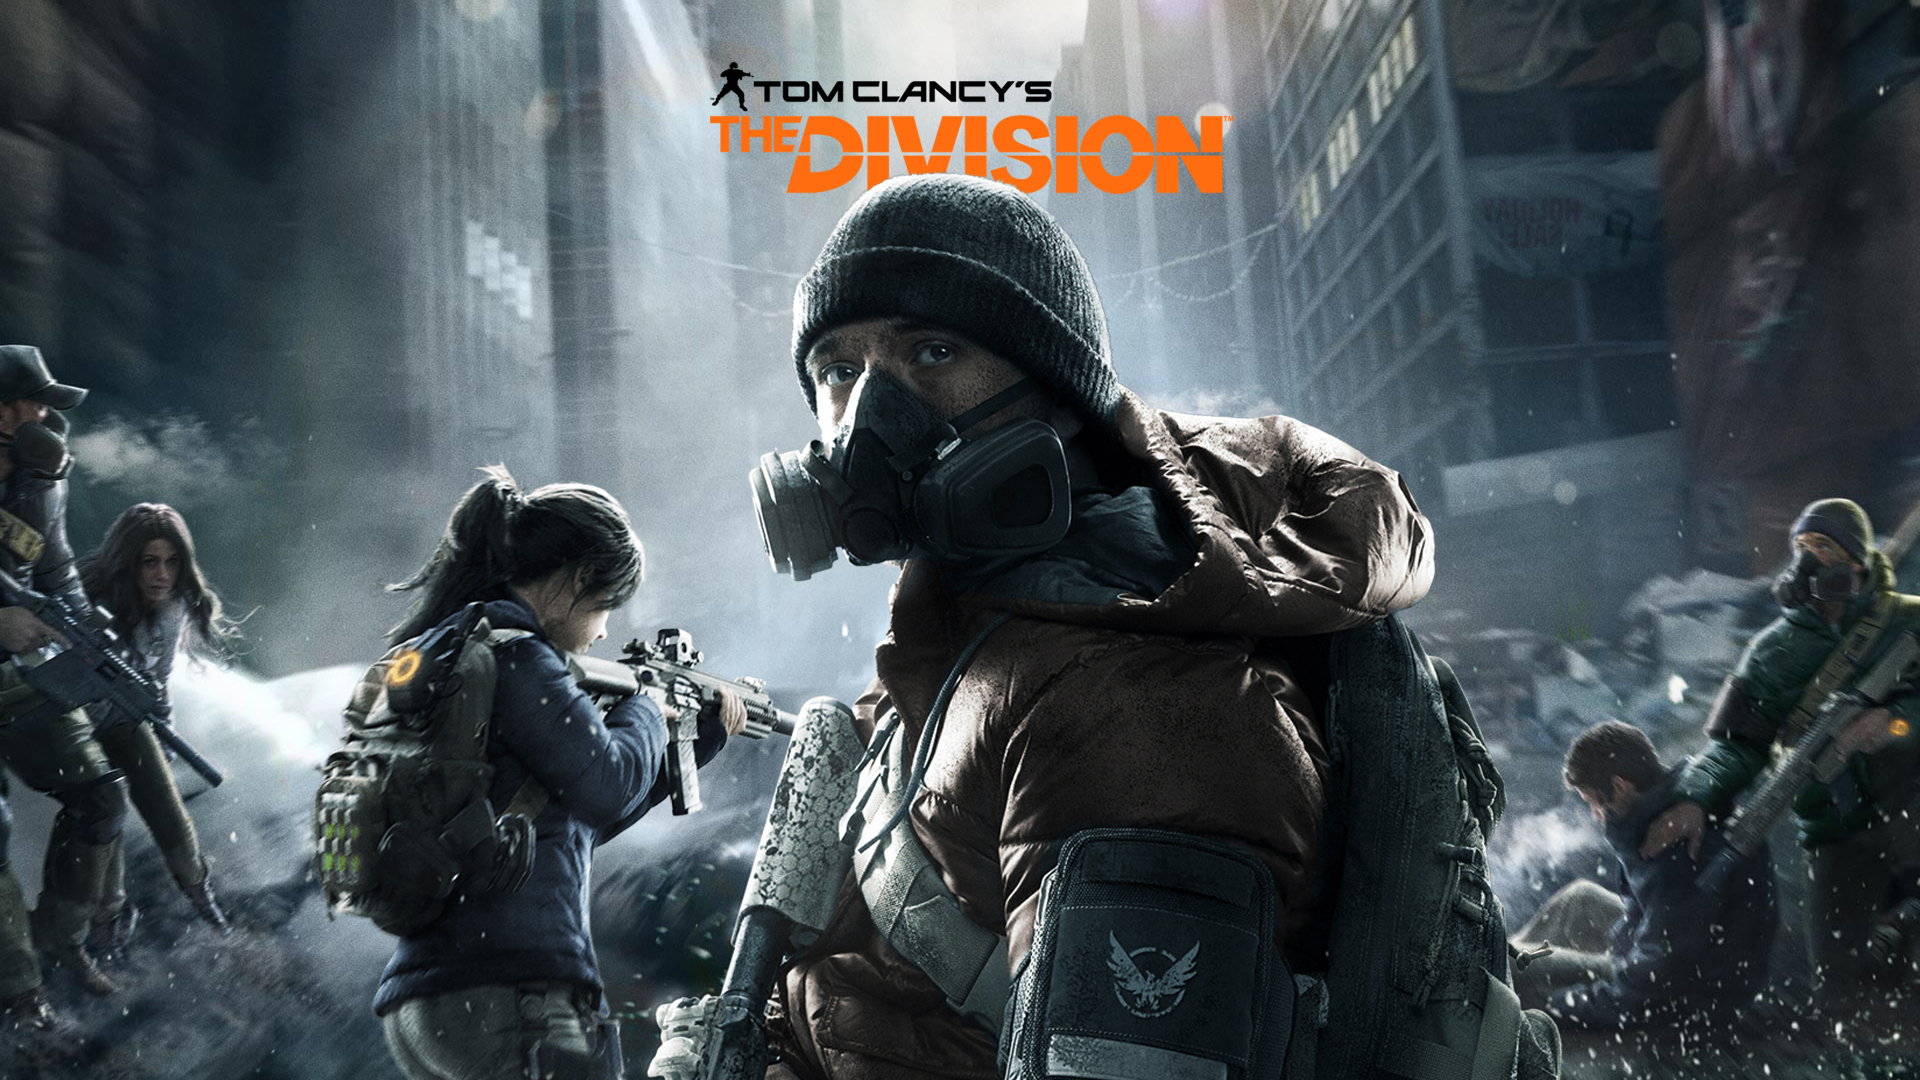 Tom Clancys The Division Wallpaper 1920x1080 by sachso74 on 1920x1080